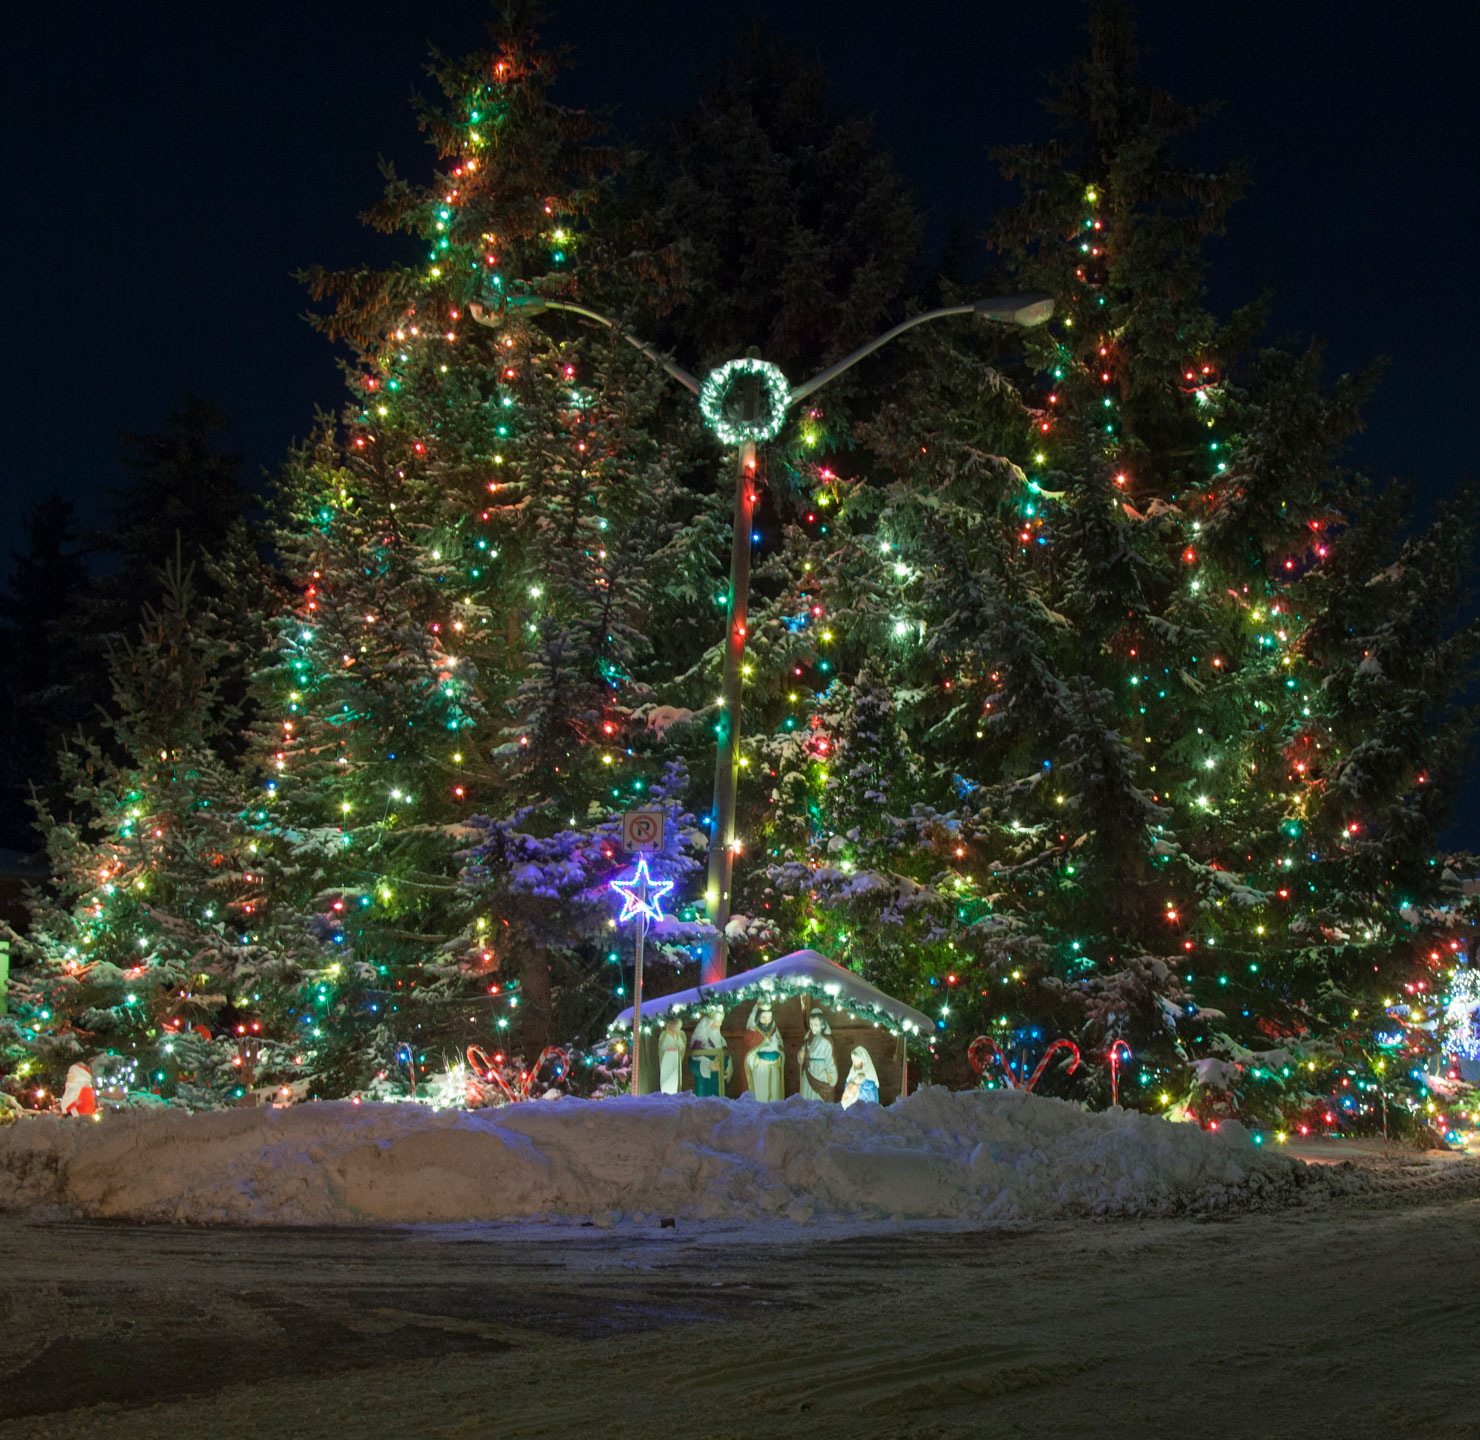 St. Catharines Holiday Events To Get The Whole Family Into The Spirit